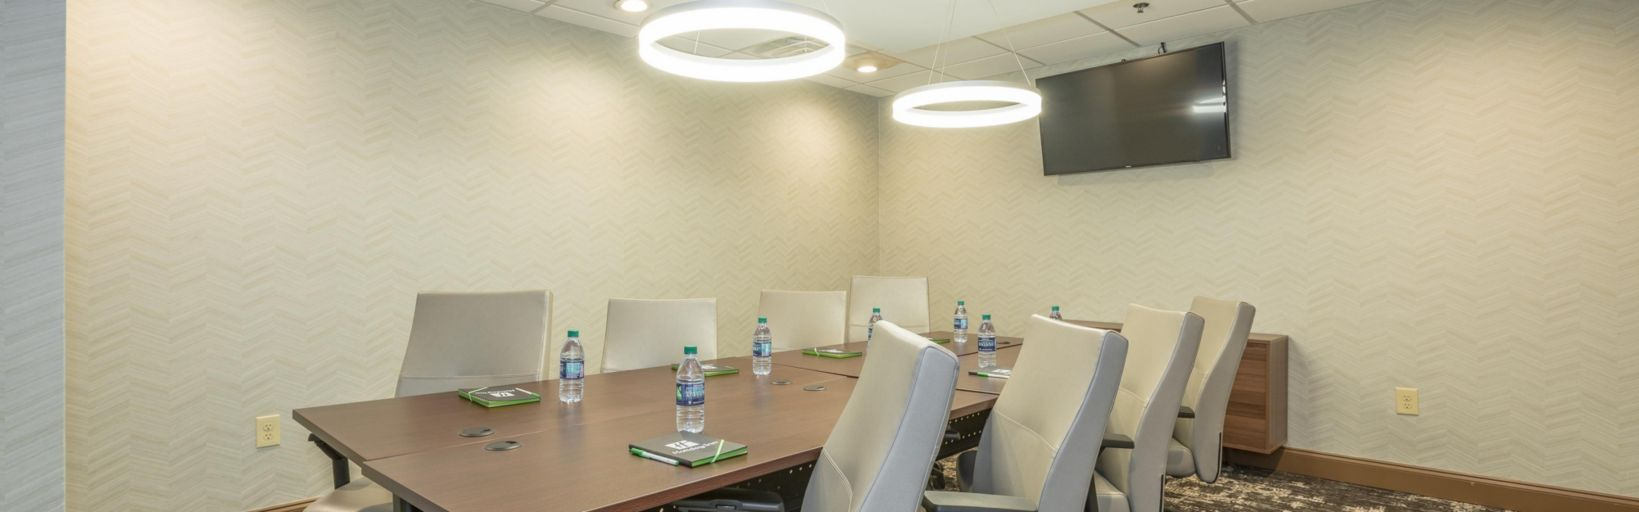 Executive Board Room-Flexible Meeting Room Space With Televison/av Capabilites 5 of 13